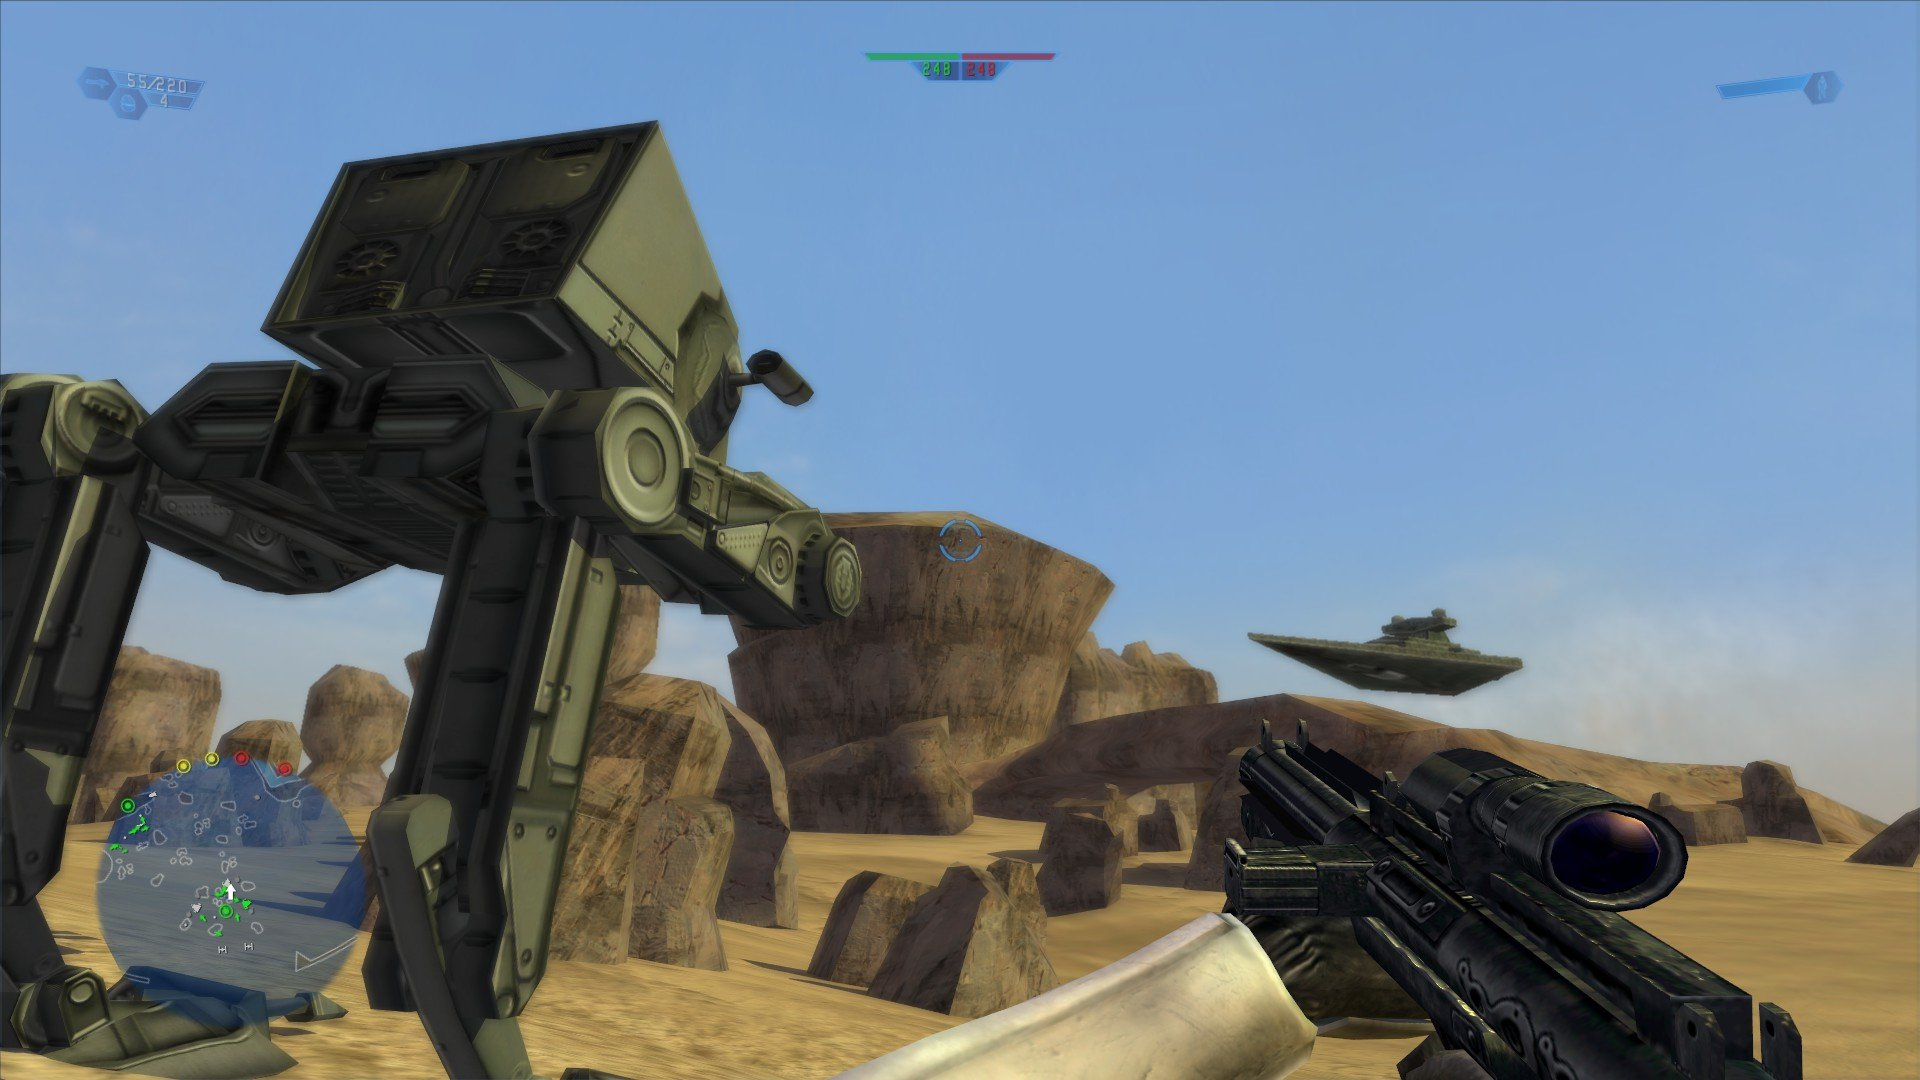 The original Star Wars Battlefront is now available on Steam and GOG screenshot